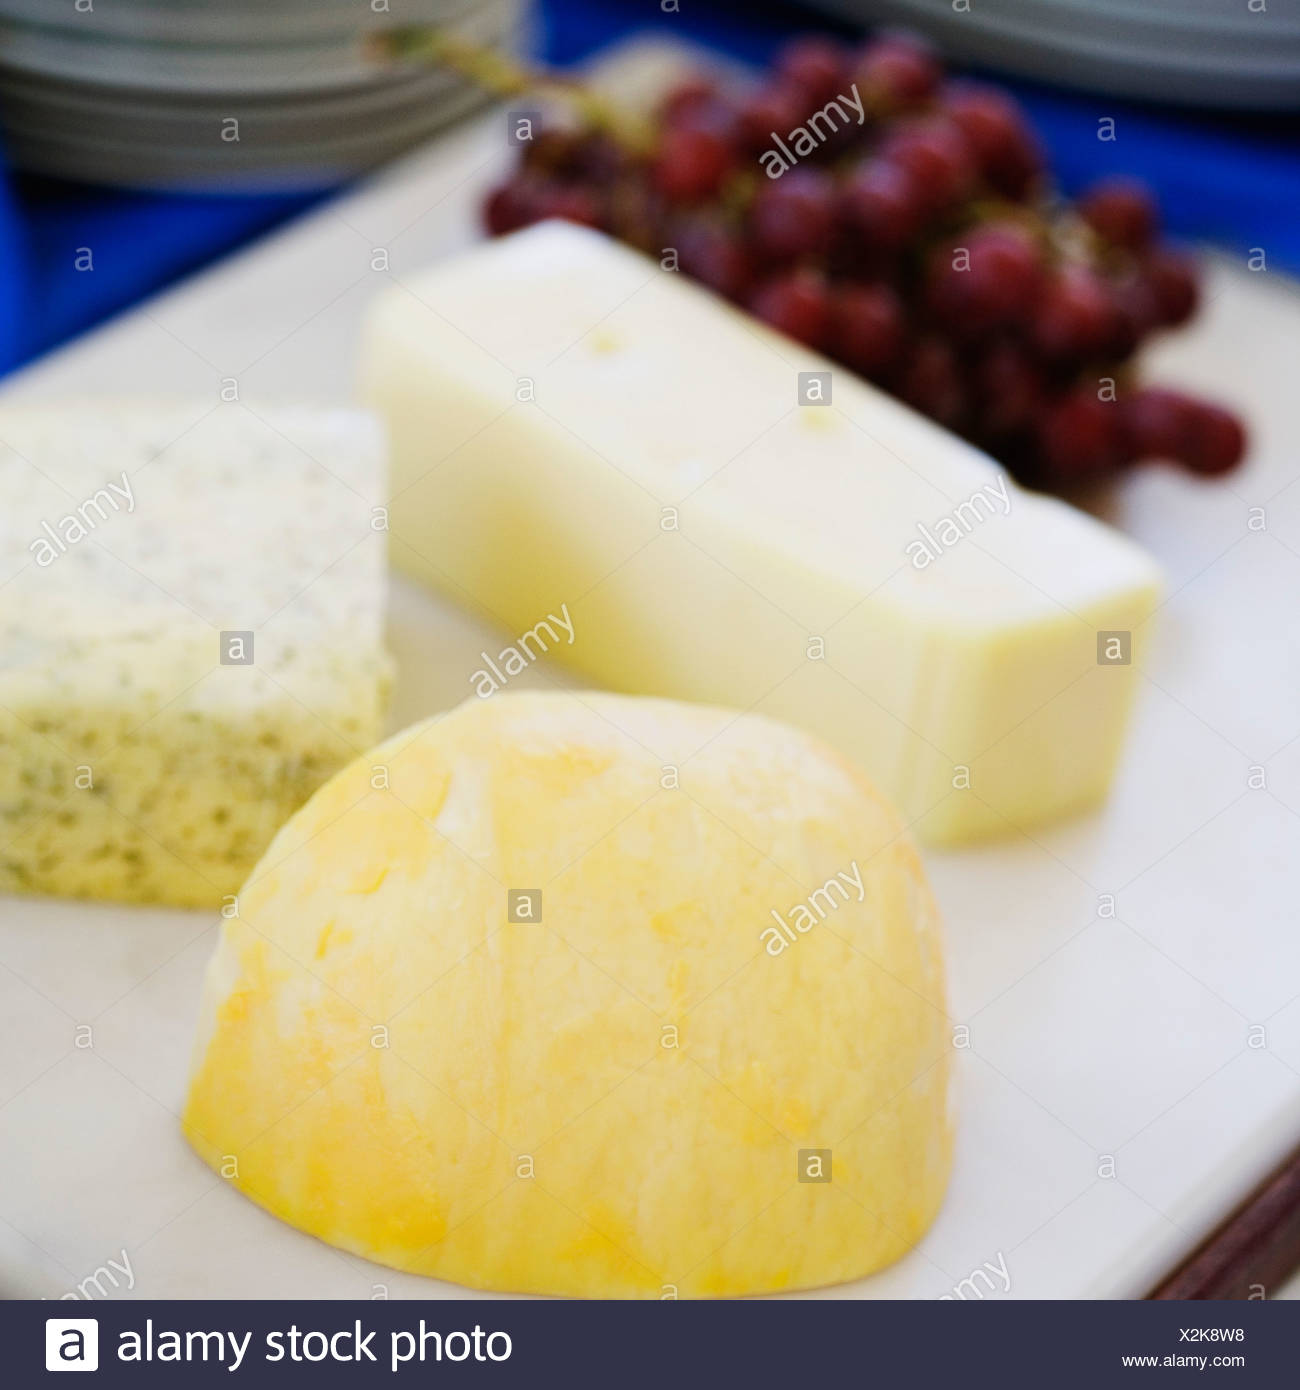 Close-up of slices of cheese with red grapes on a cutting board - Stock Image